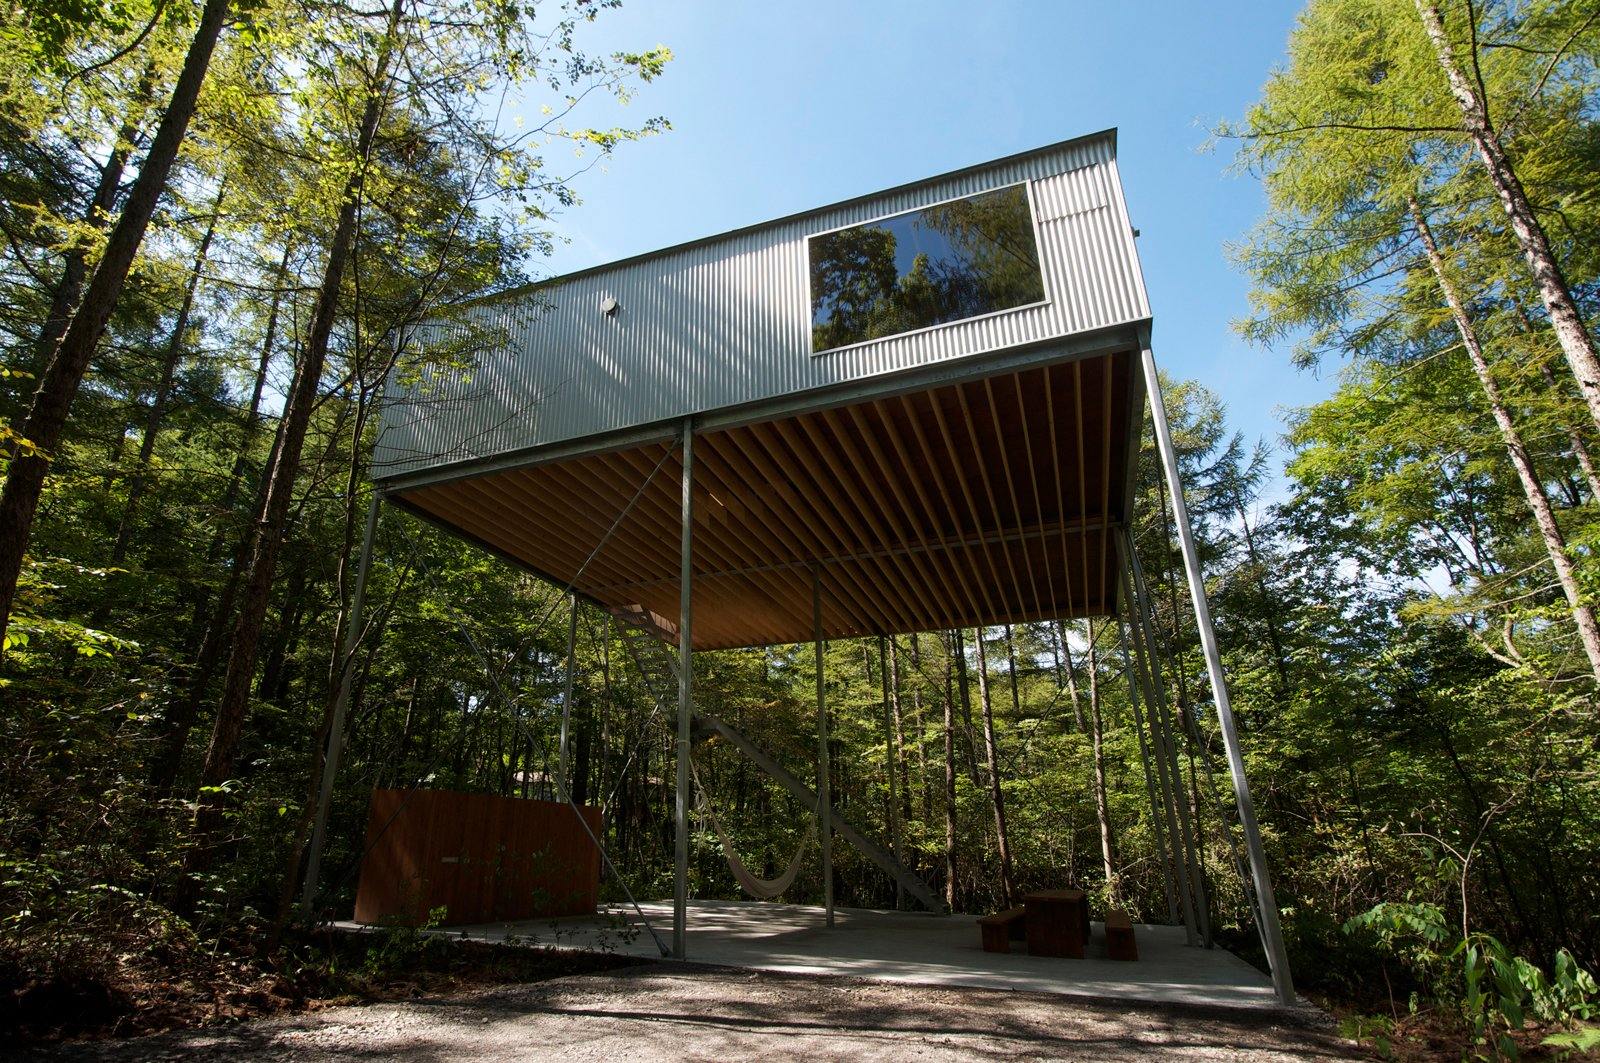 Nine slender, 100 x 100 millimeter square steel columns that are held in place by crossed braces on all four sides hold the small weekend house 6.5 meters in midair. Modern Treehouses by Aileen Kwun